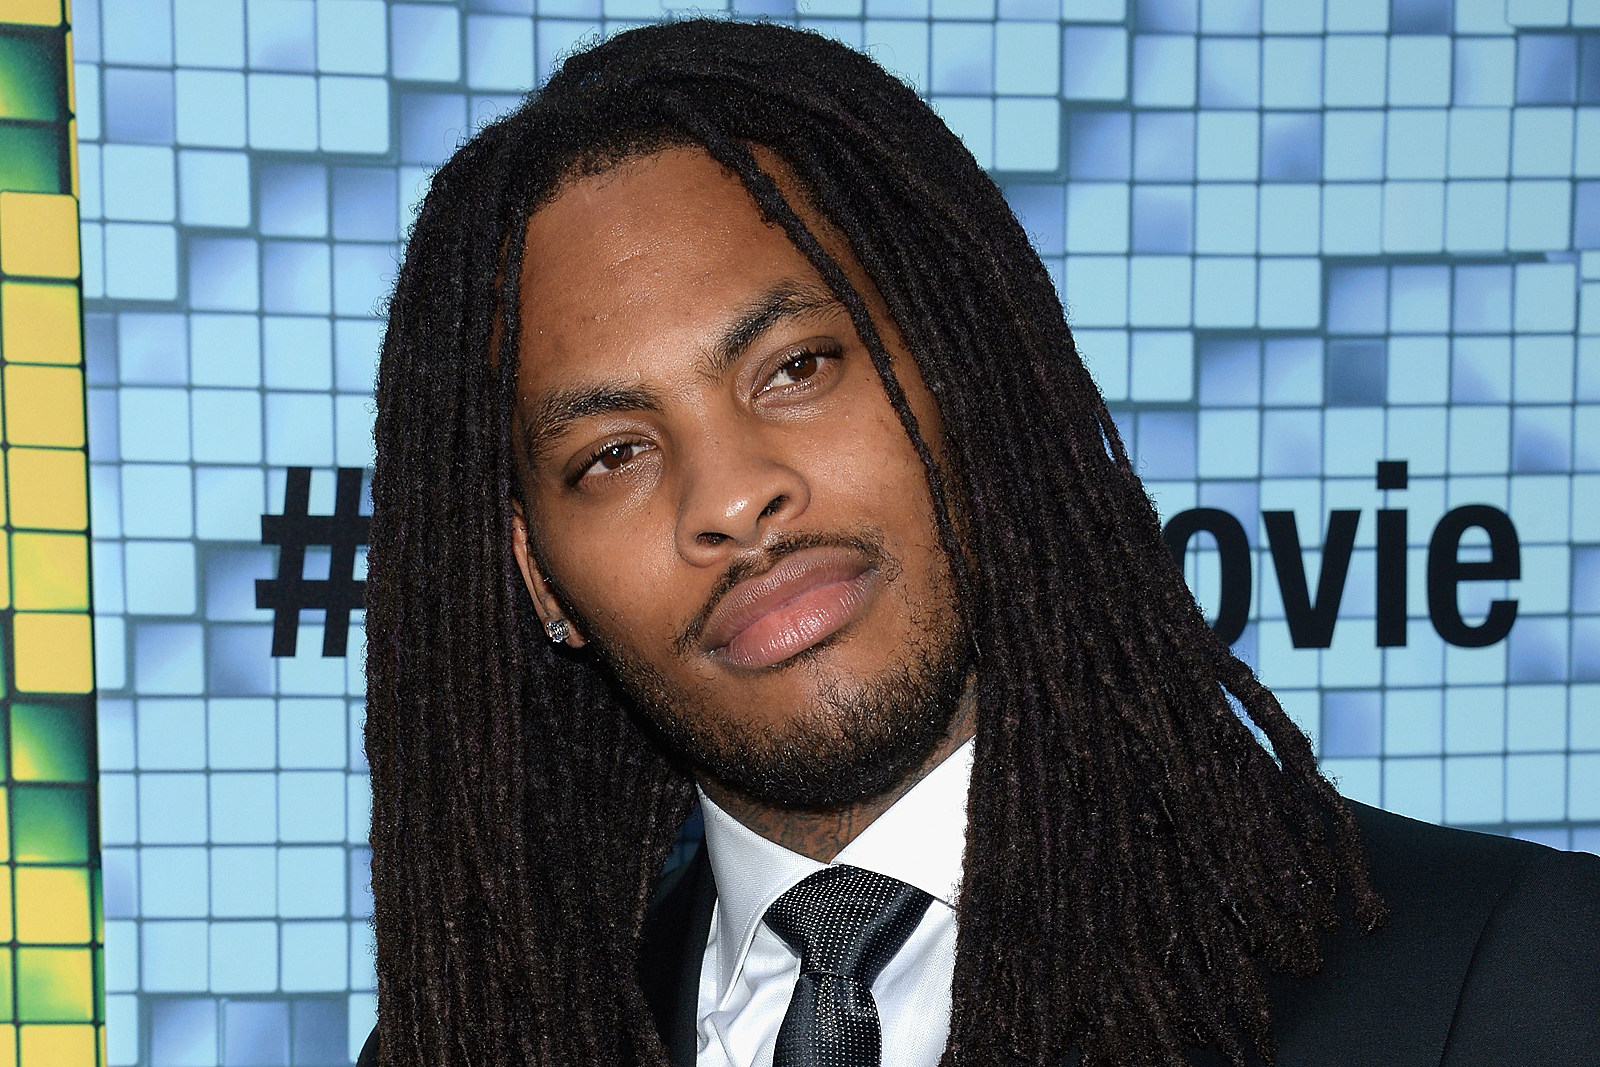 Waka Flocka Flame and Ric Flair Announce Their Entry Into the Presidential Race news